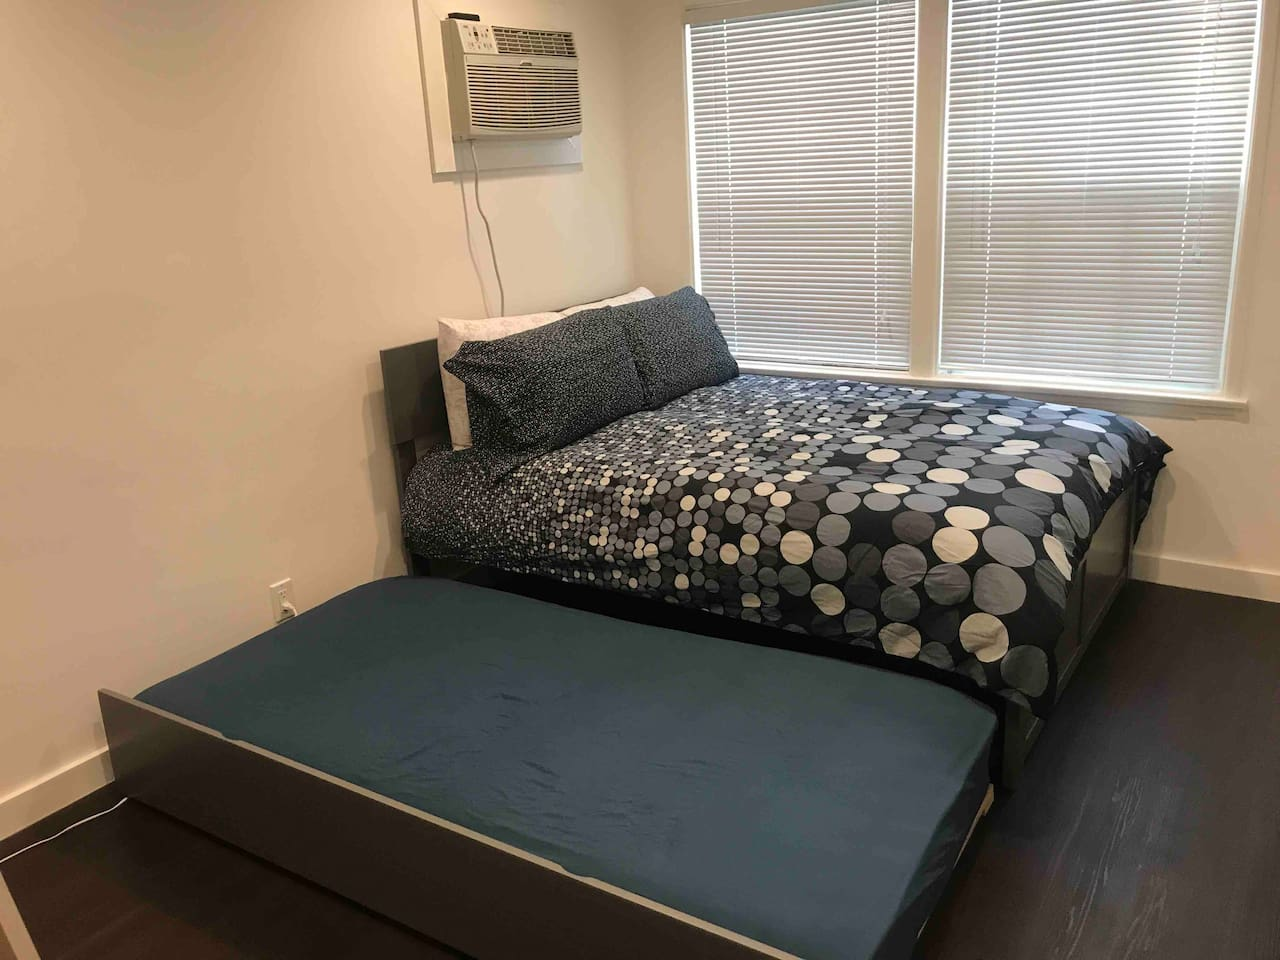 Trundle bed. The top bed is a full size bed and the one under it is a twin size.